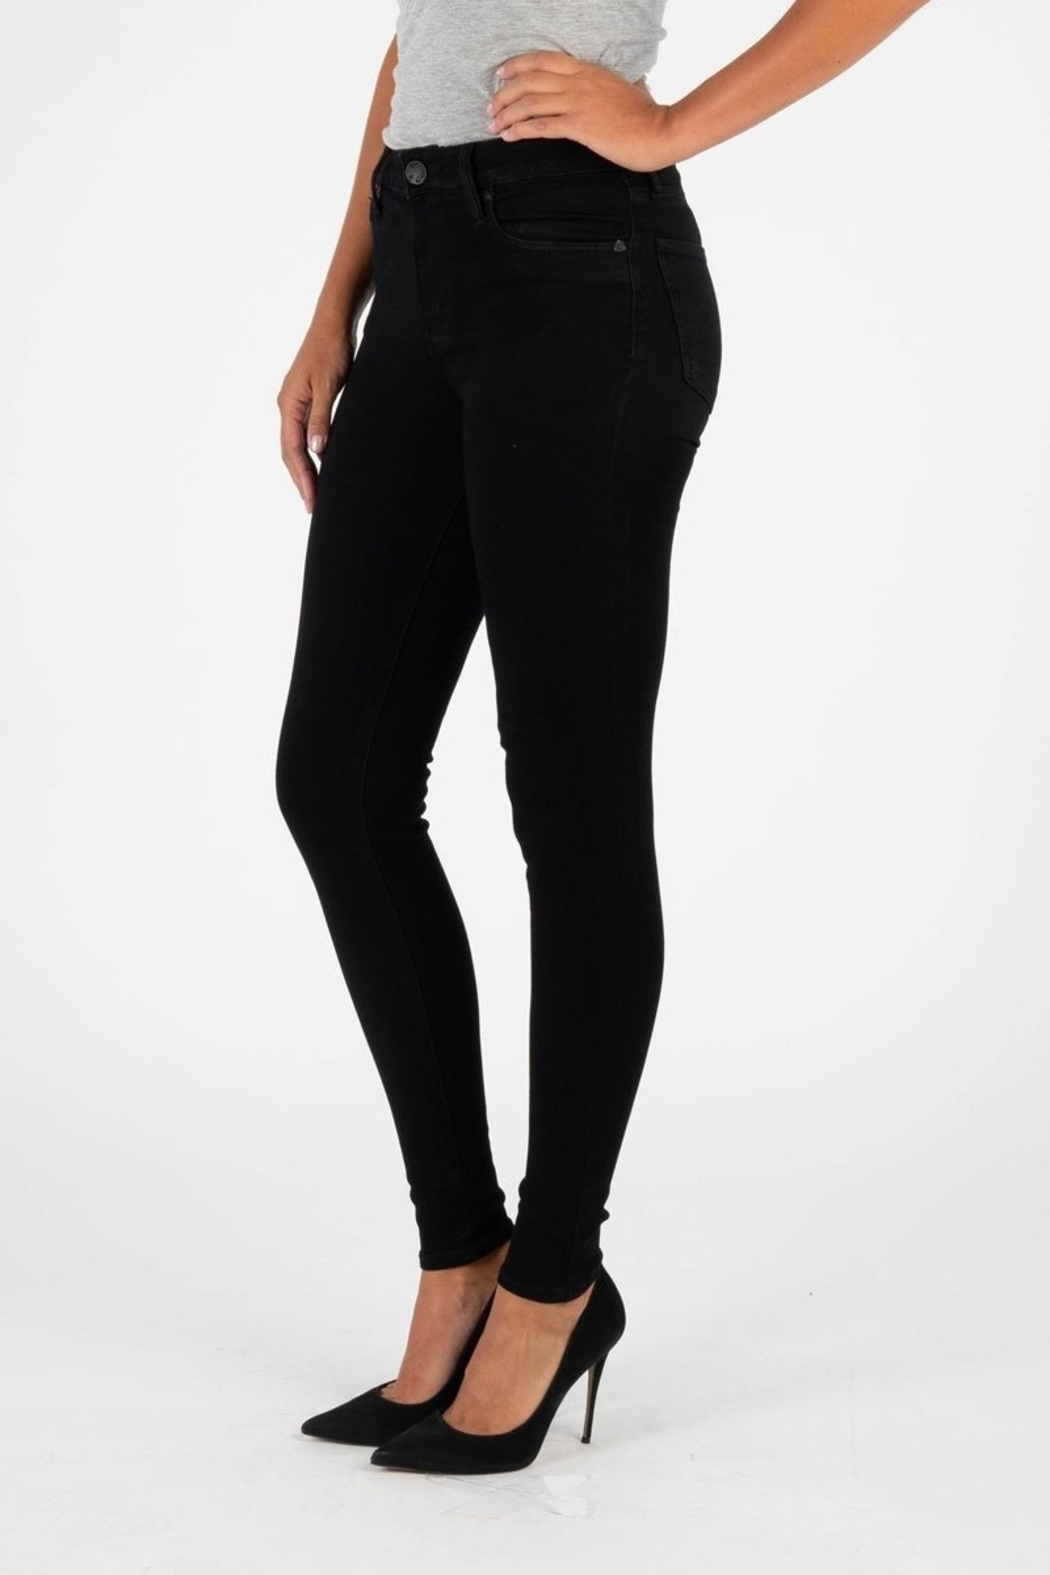 Kut from the Kloth MIA HIGHRISE SKINNY - Side Cropped Image